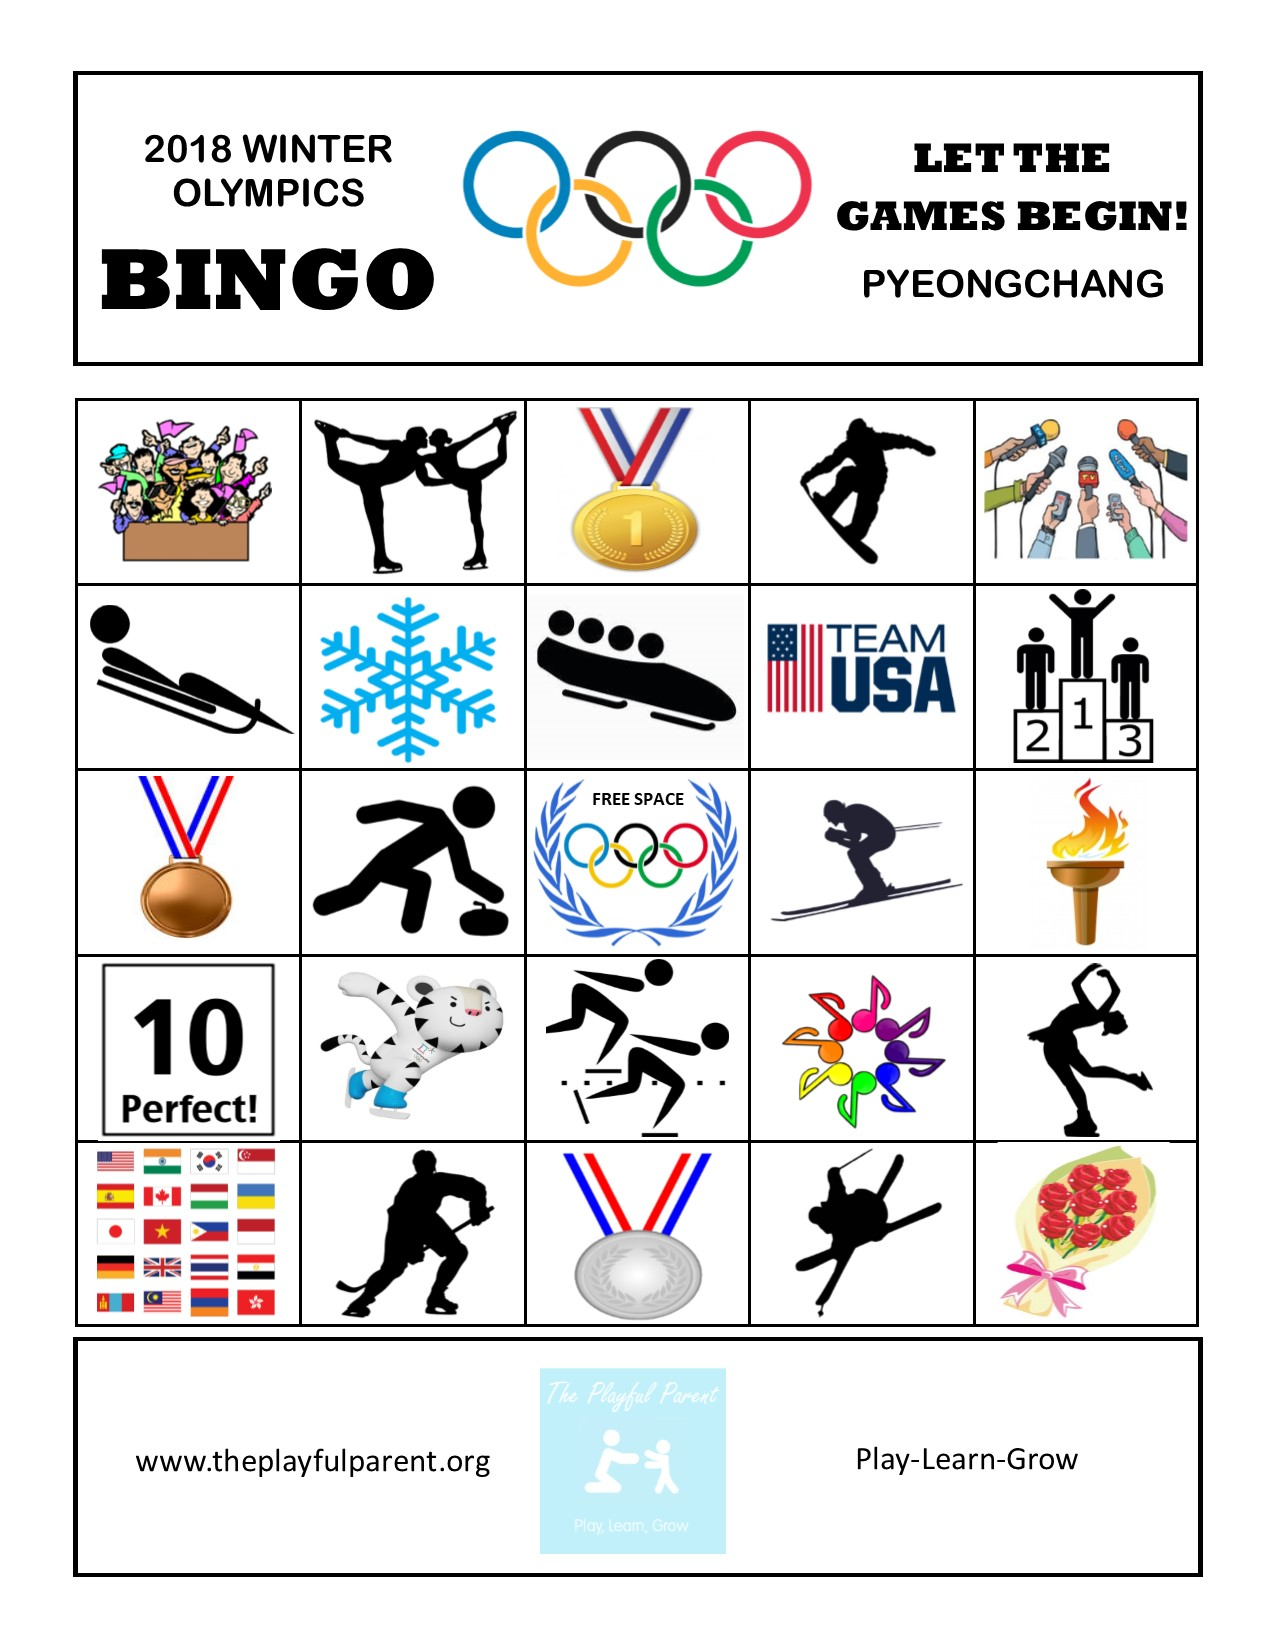 image about Printable Olympic Schedule known as Free of charge PRINTABLE Winter season OLYMPIC BINGO